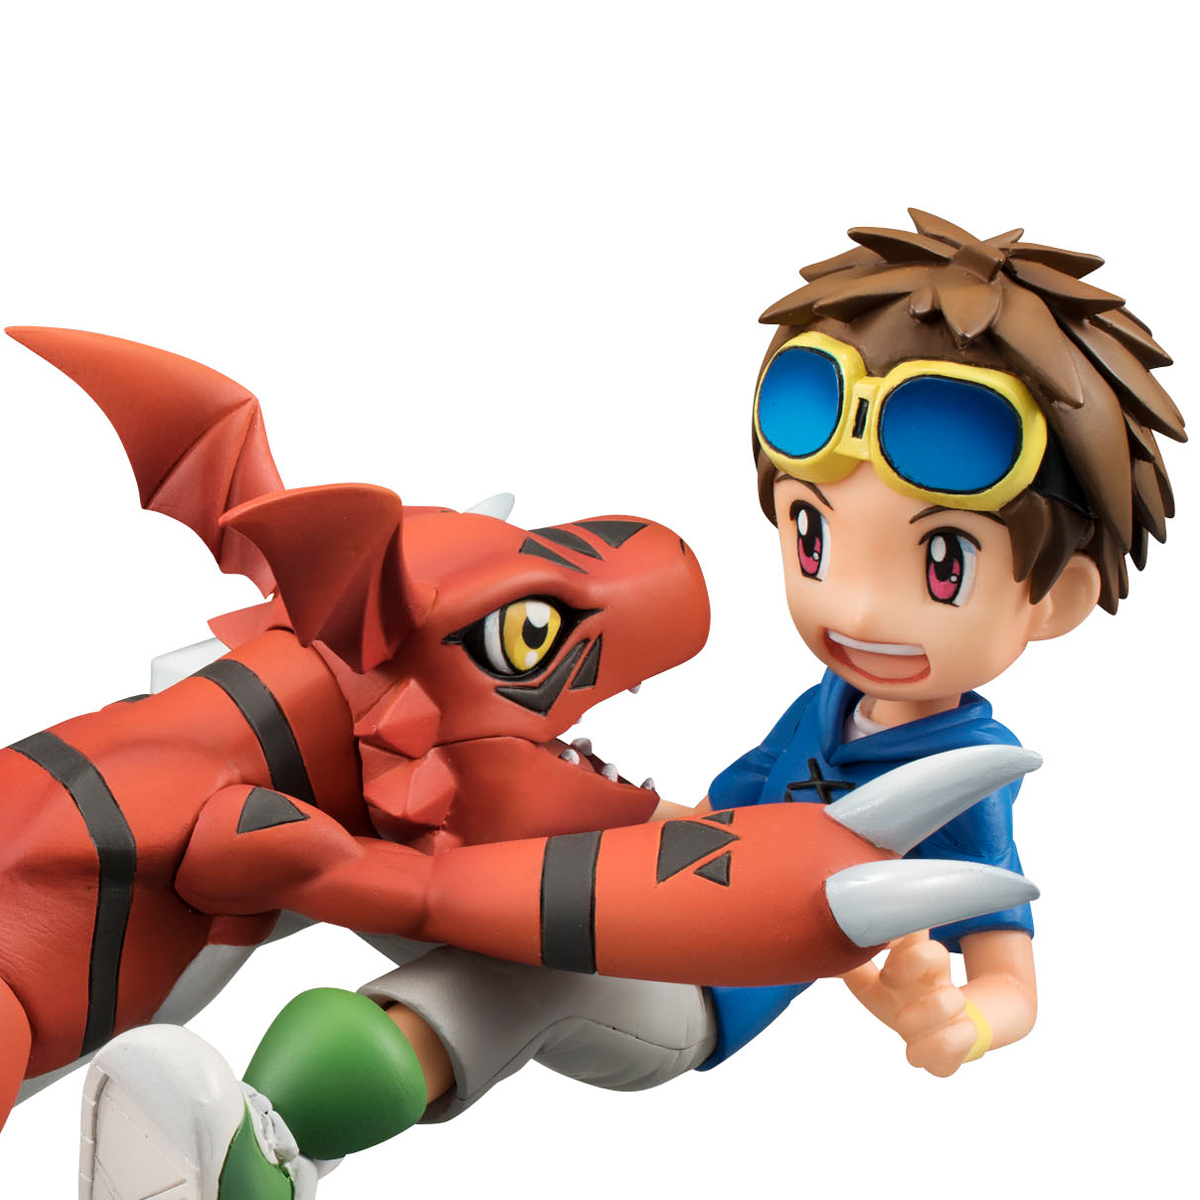 Guilmon and Takato Matsuda (Re-run) Digimon GEM Series Figure